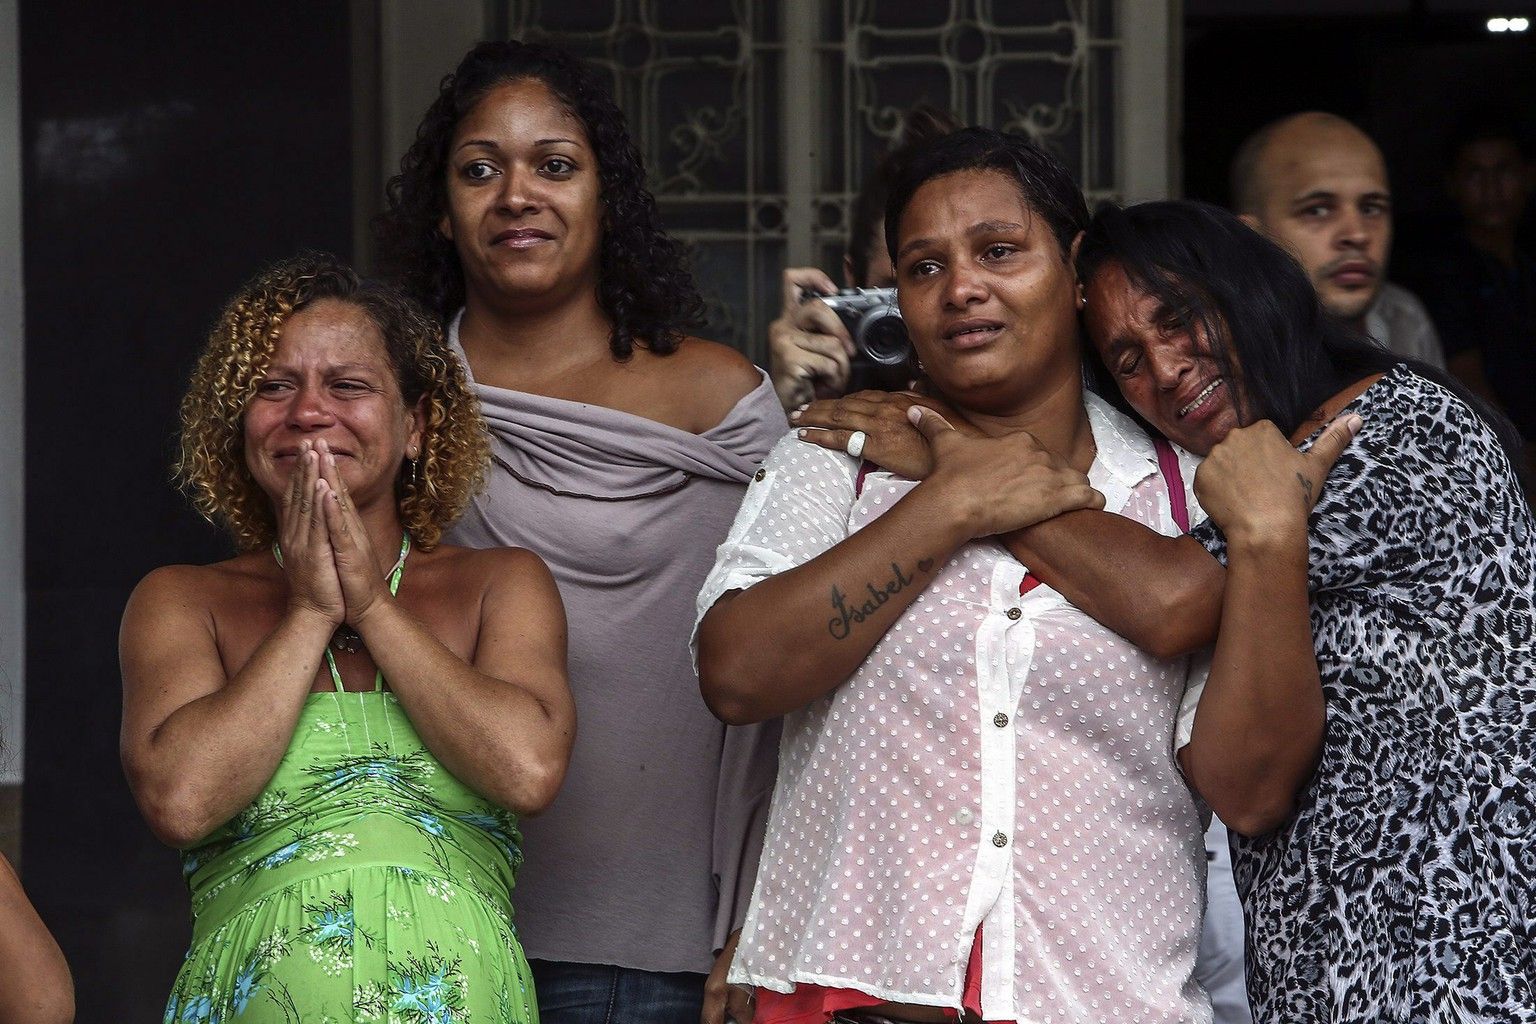 epa04179010 Women cry during the funeral of 25 year old dancer Douglas Pereira, who was a member of the dancing group from a popular television show and who died on 21 April lduring a police operation in the Pavao-Pavaozinho slum, in Rio de Janeiro, Brazil, 24 April 2014. The death of a dancer in one of Rio de Janeiro's slums touched off violent protests and sparked an investigation on 24 April into the role that the militarized police might have played. Eight officers with the so-called militarized police appeared on 24 April before the civilian police in the case, which was causing great tension in the city only 49 days ahead of the World Cup.  EPA/Antonio Lacerda